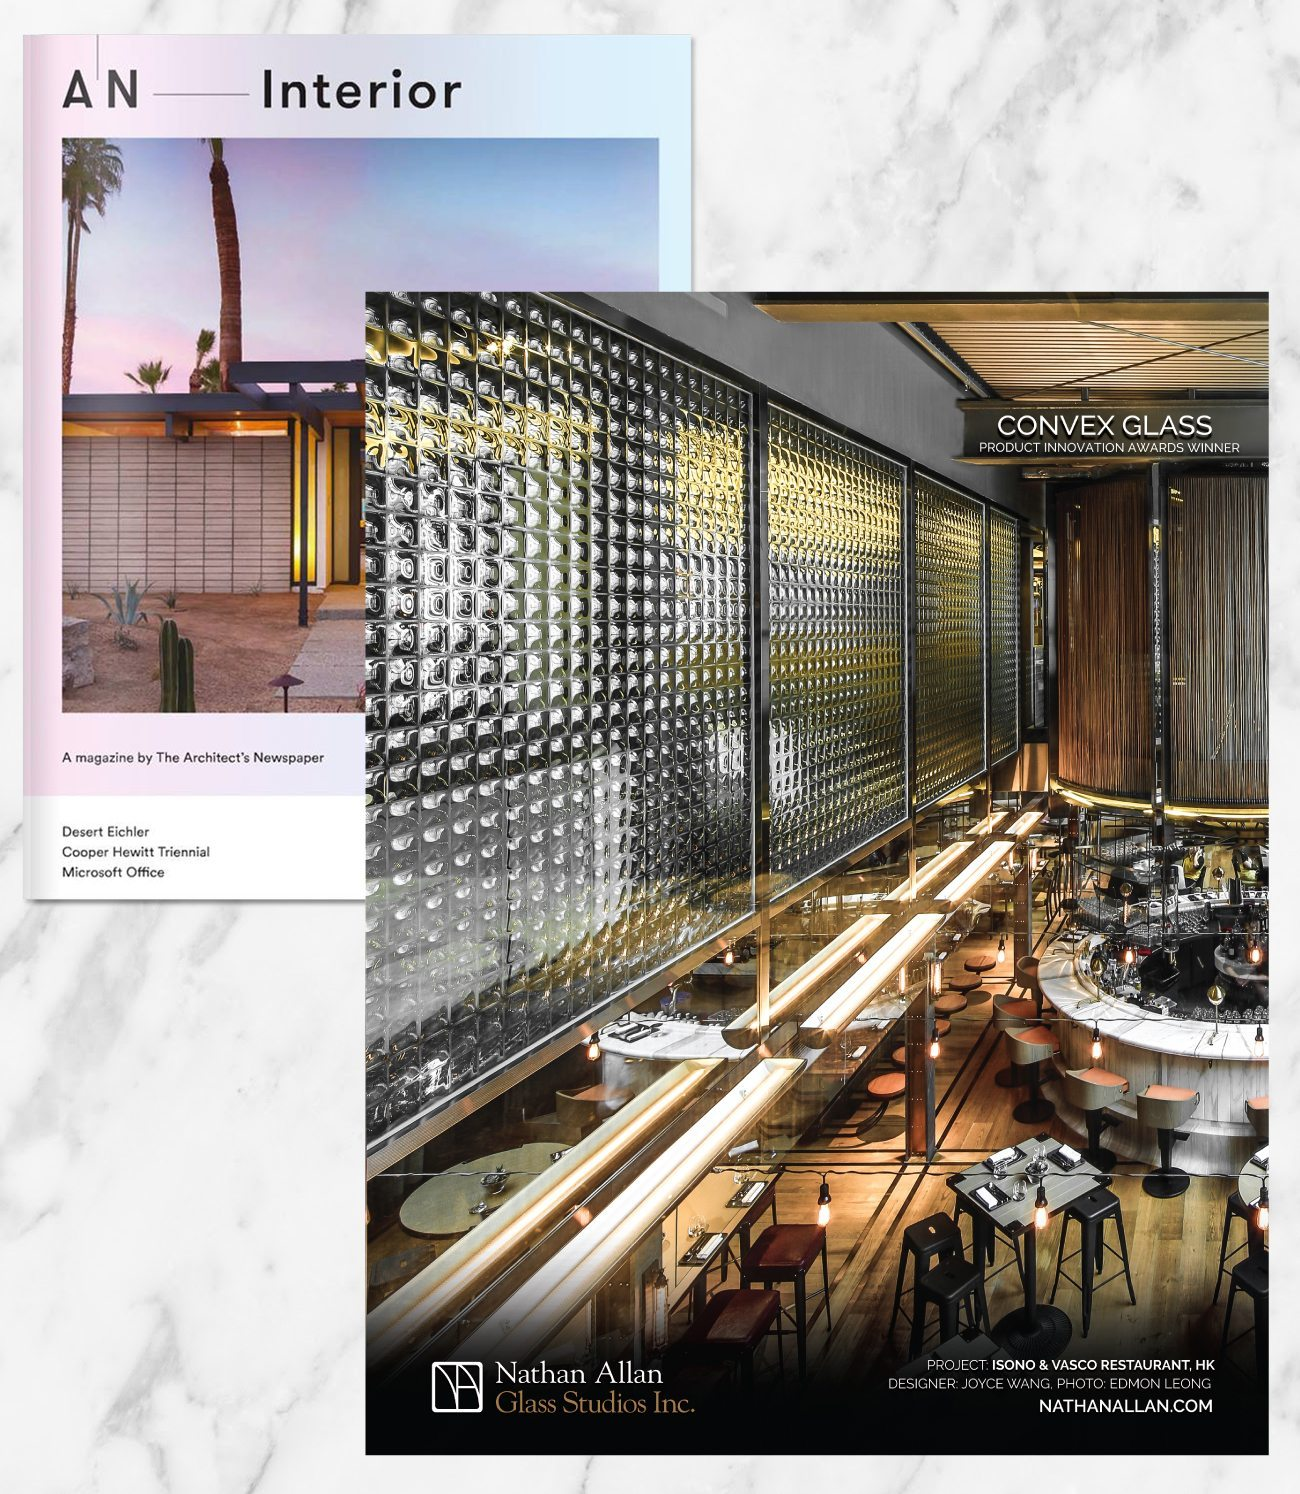 AN Interior Magazine